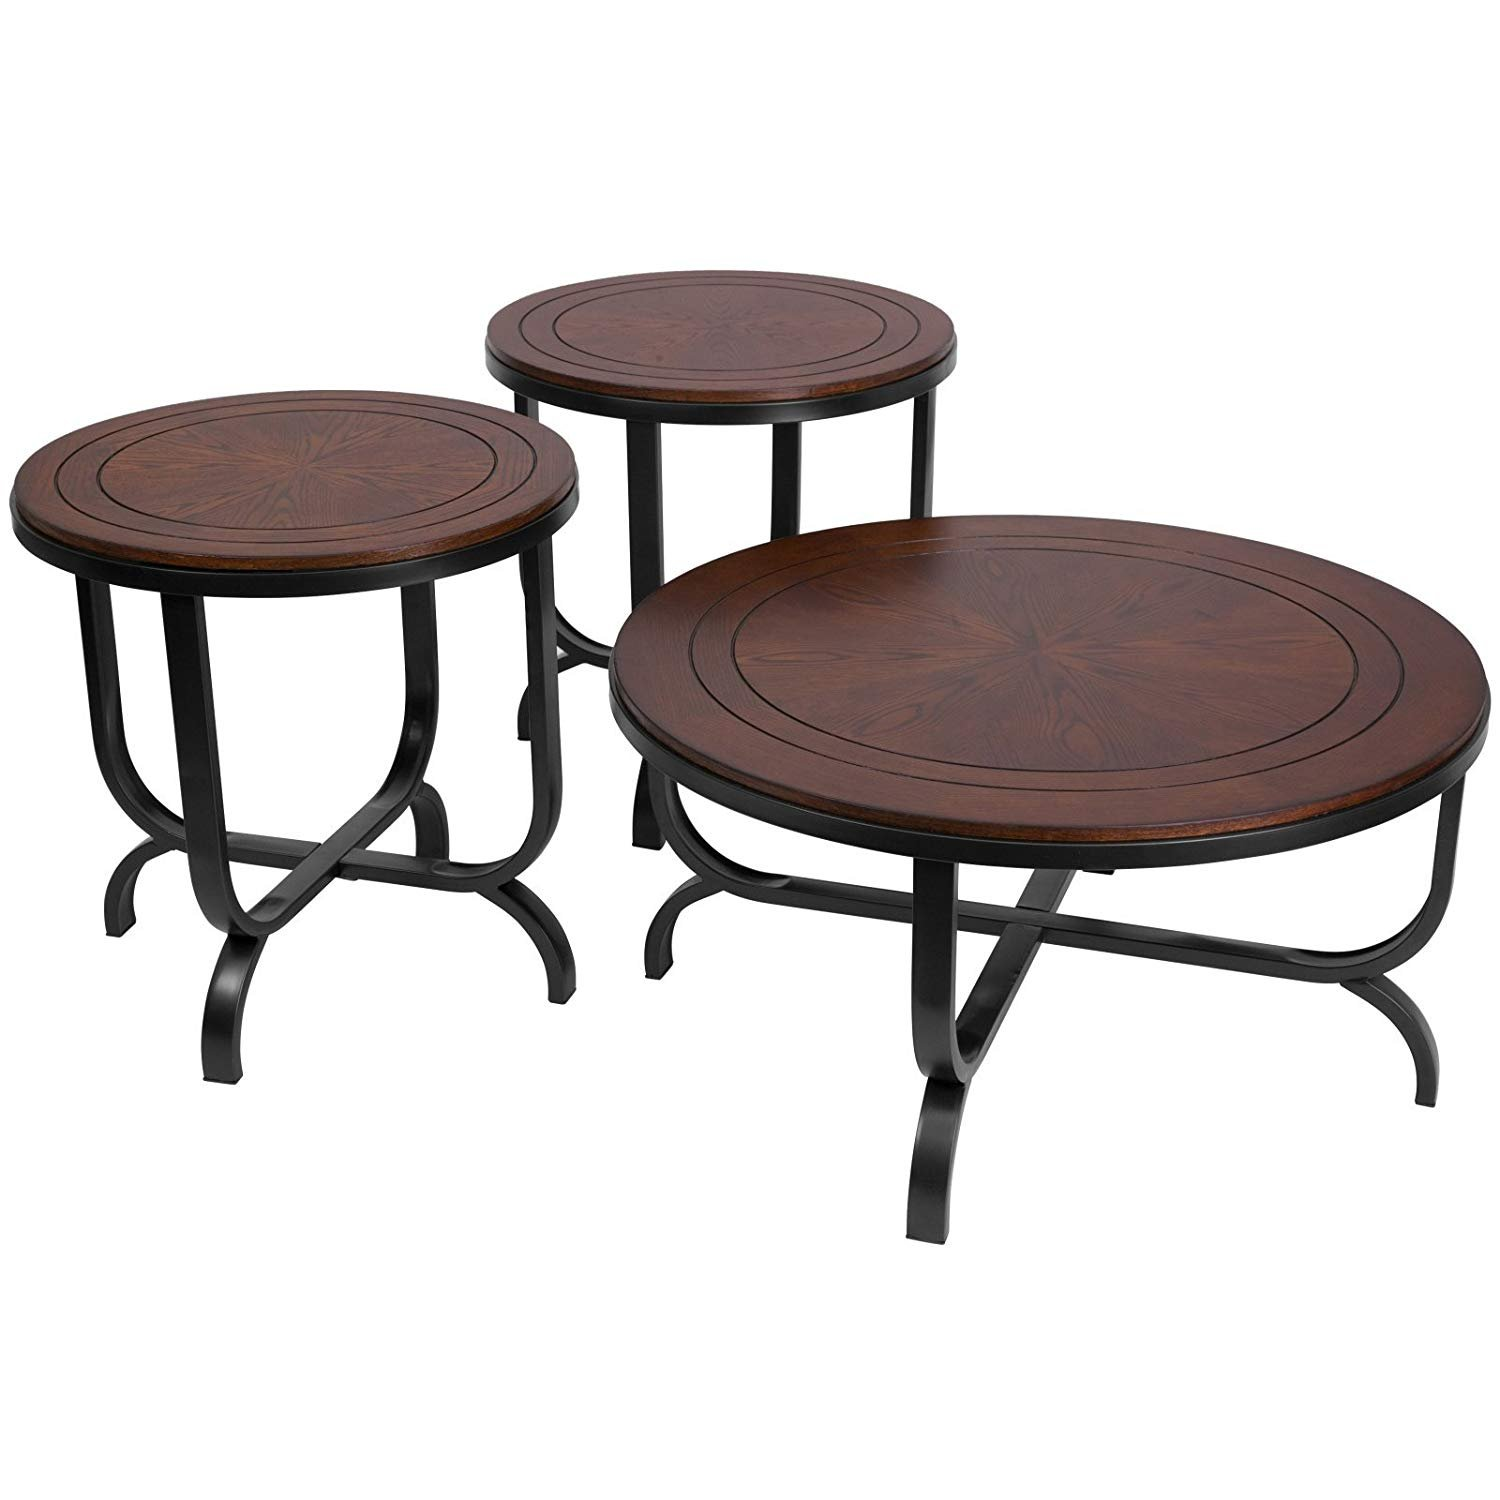 Ashley Furniture Signature Design - Ferlin Circular Occasional Table Set - Contains Cocktail Table & 2 End Tables - Contemporary - Dark Brown by Signature Design by Ashley